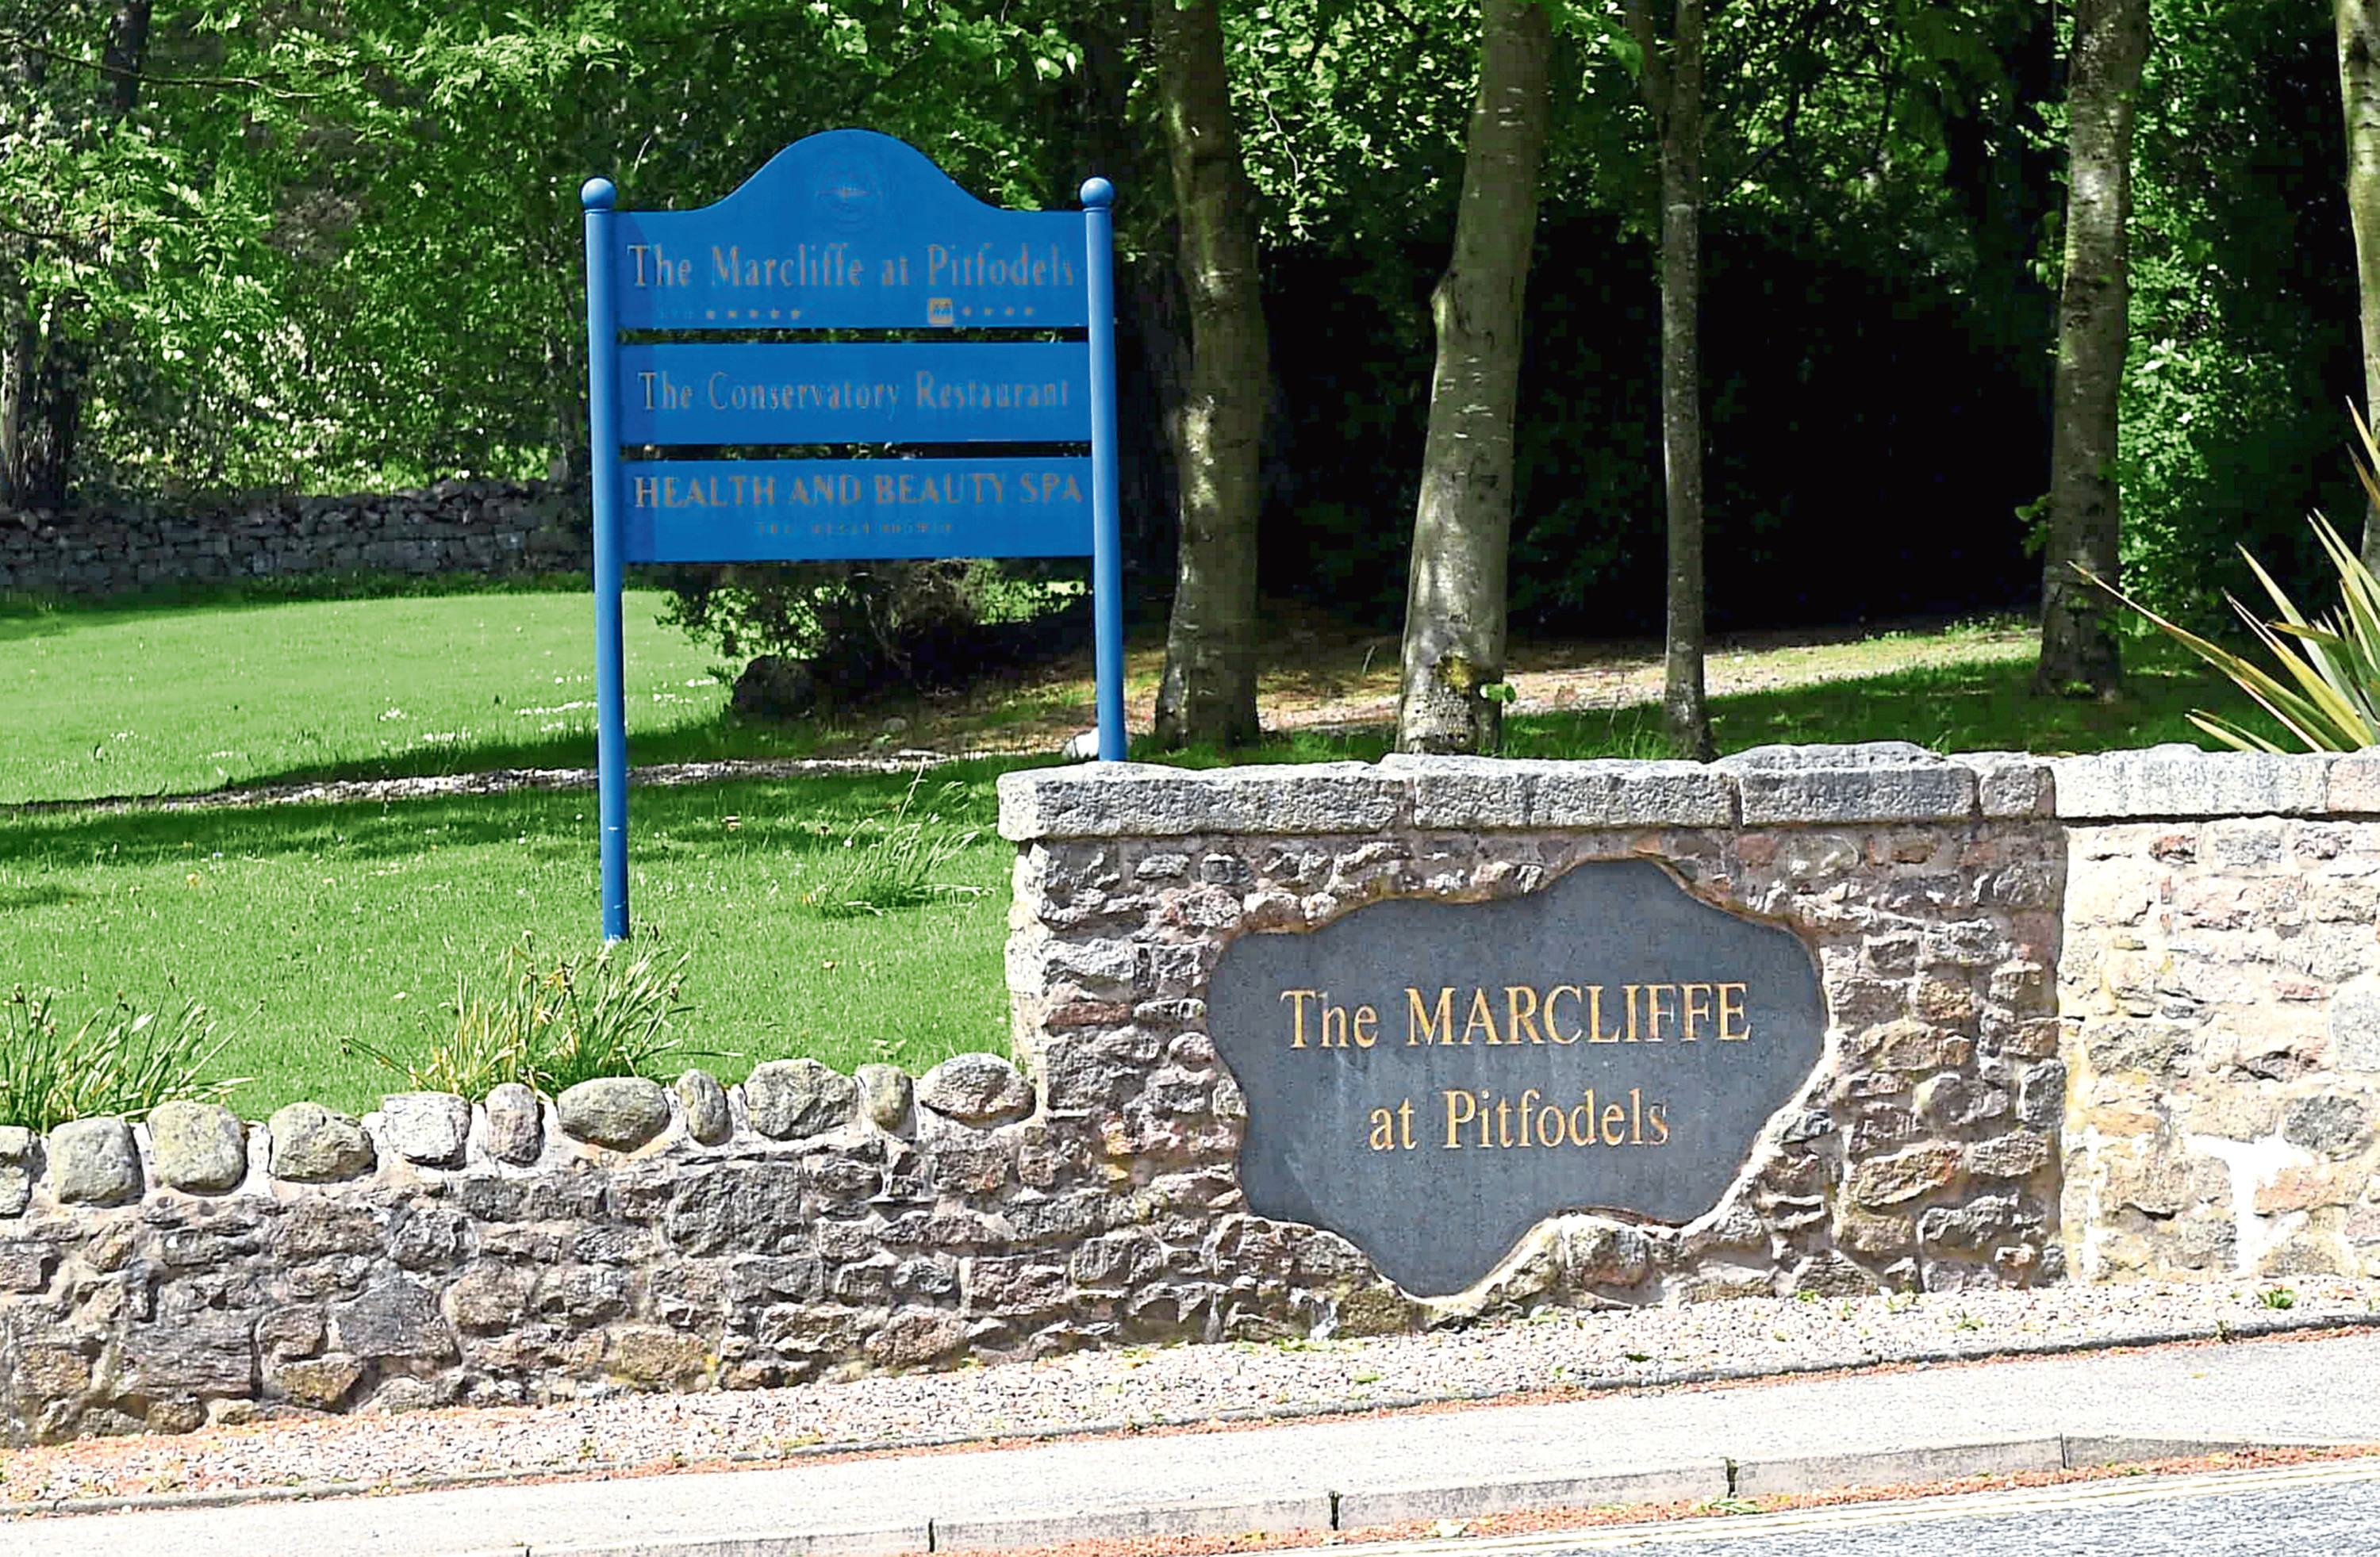 The Scottish Government have backed plans for the care home next to the Marcliffe Hotel